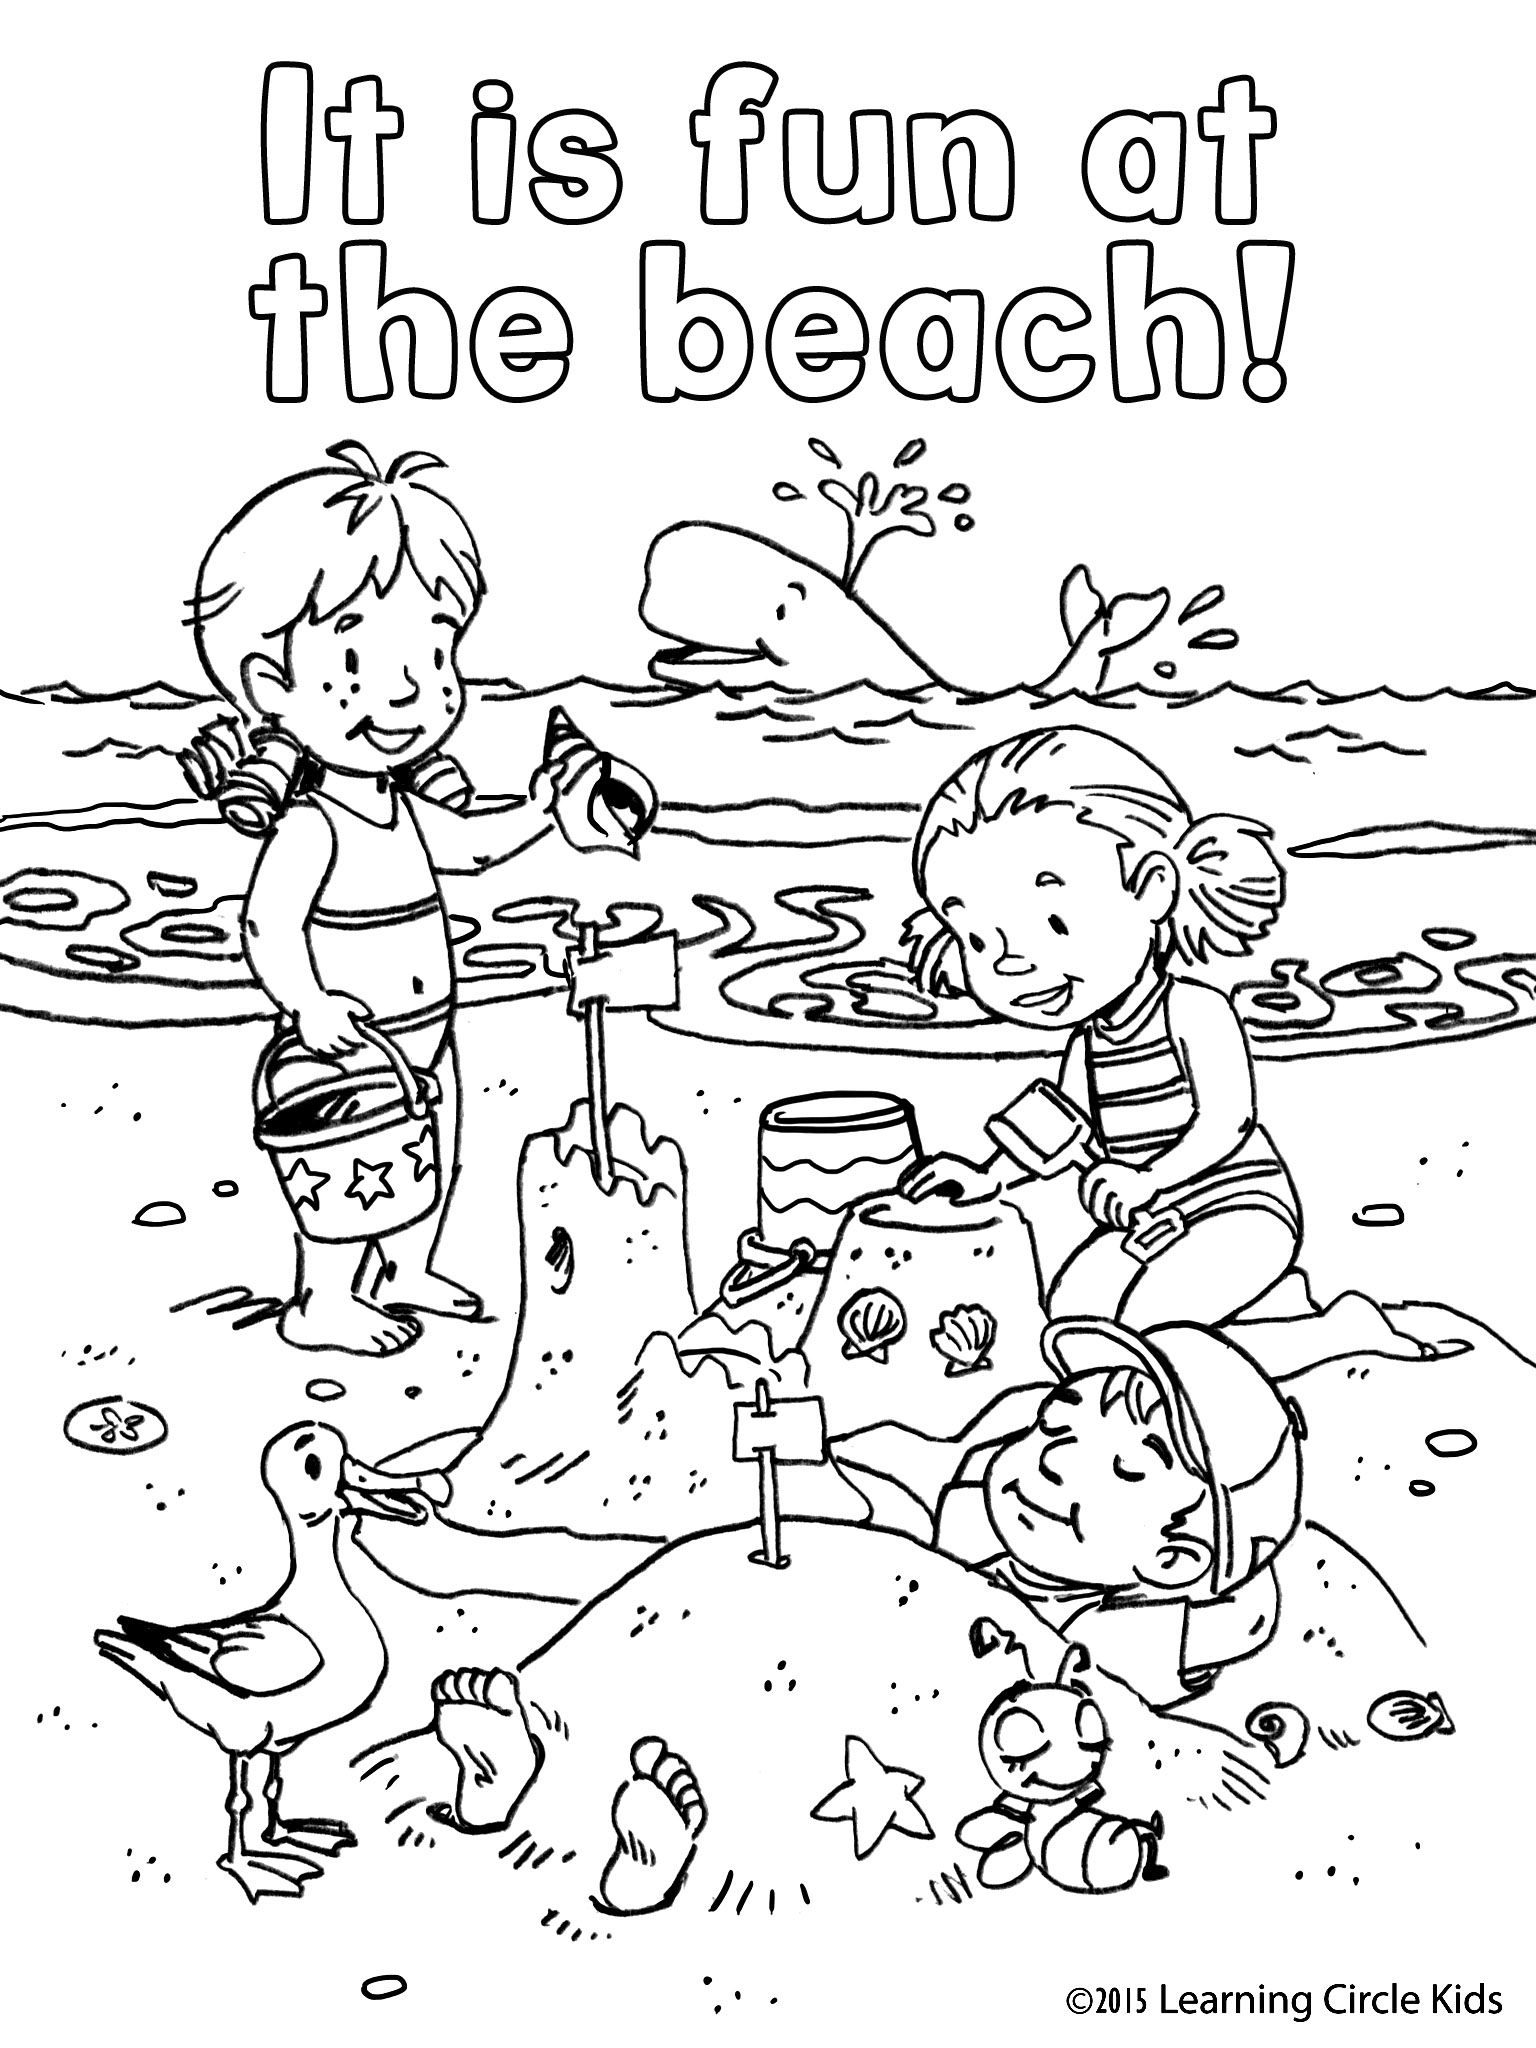 Free coloring page Children 39 s summer fun at the beach